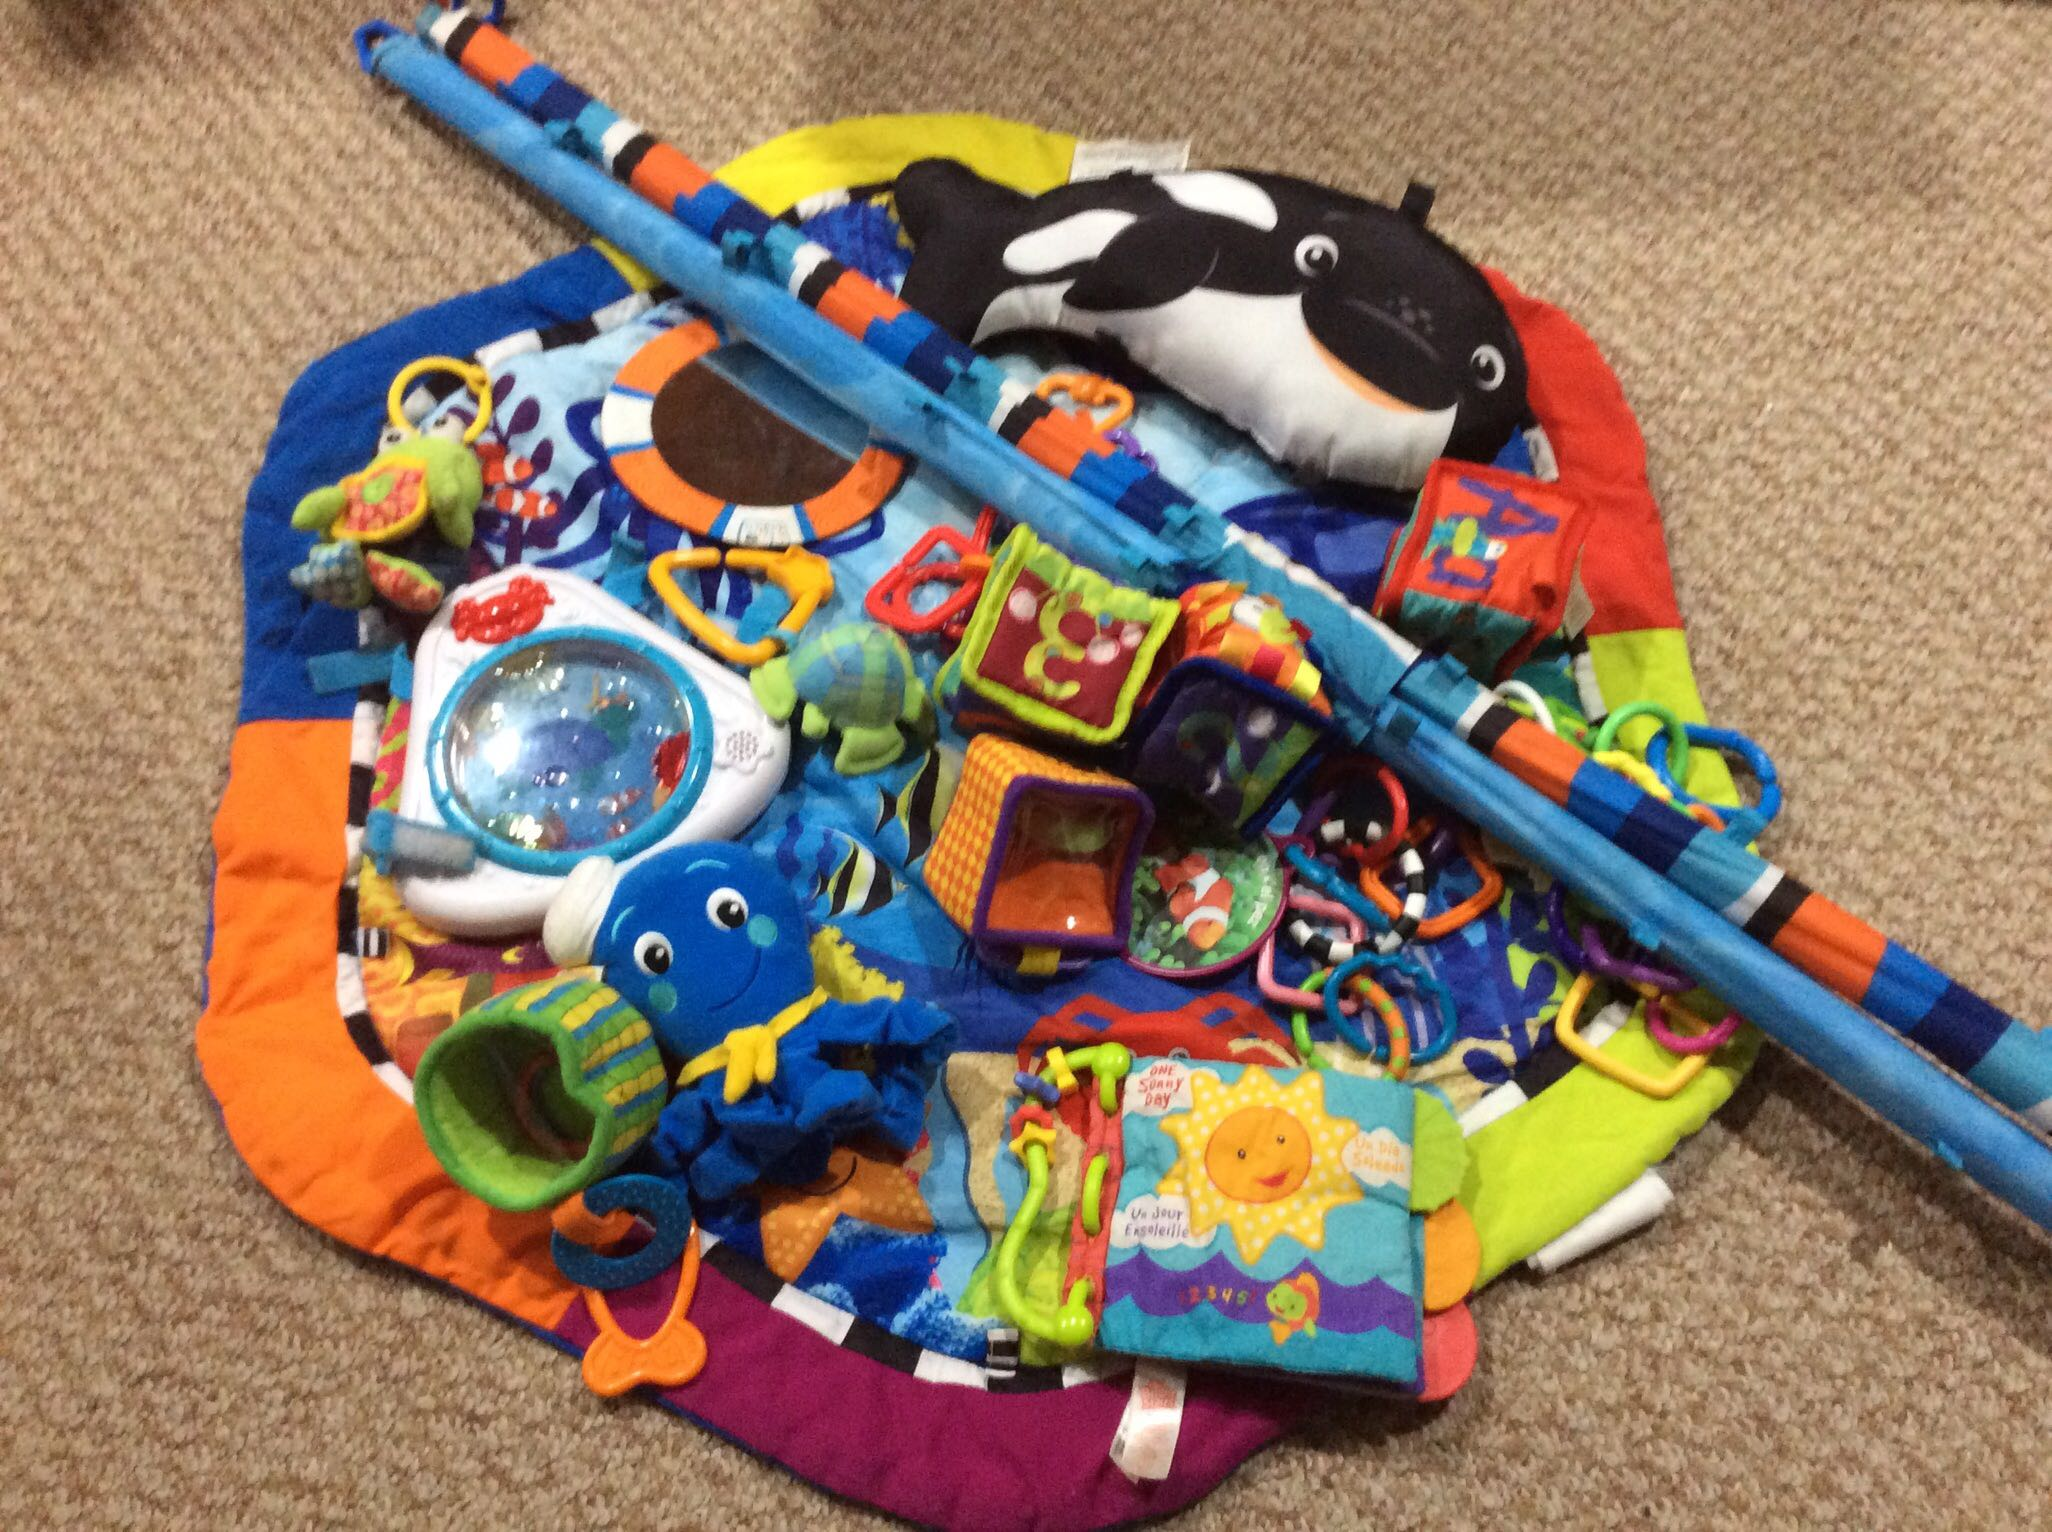 Play mat ocean theme activity centre in EUC for ages 0+